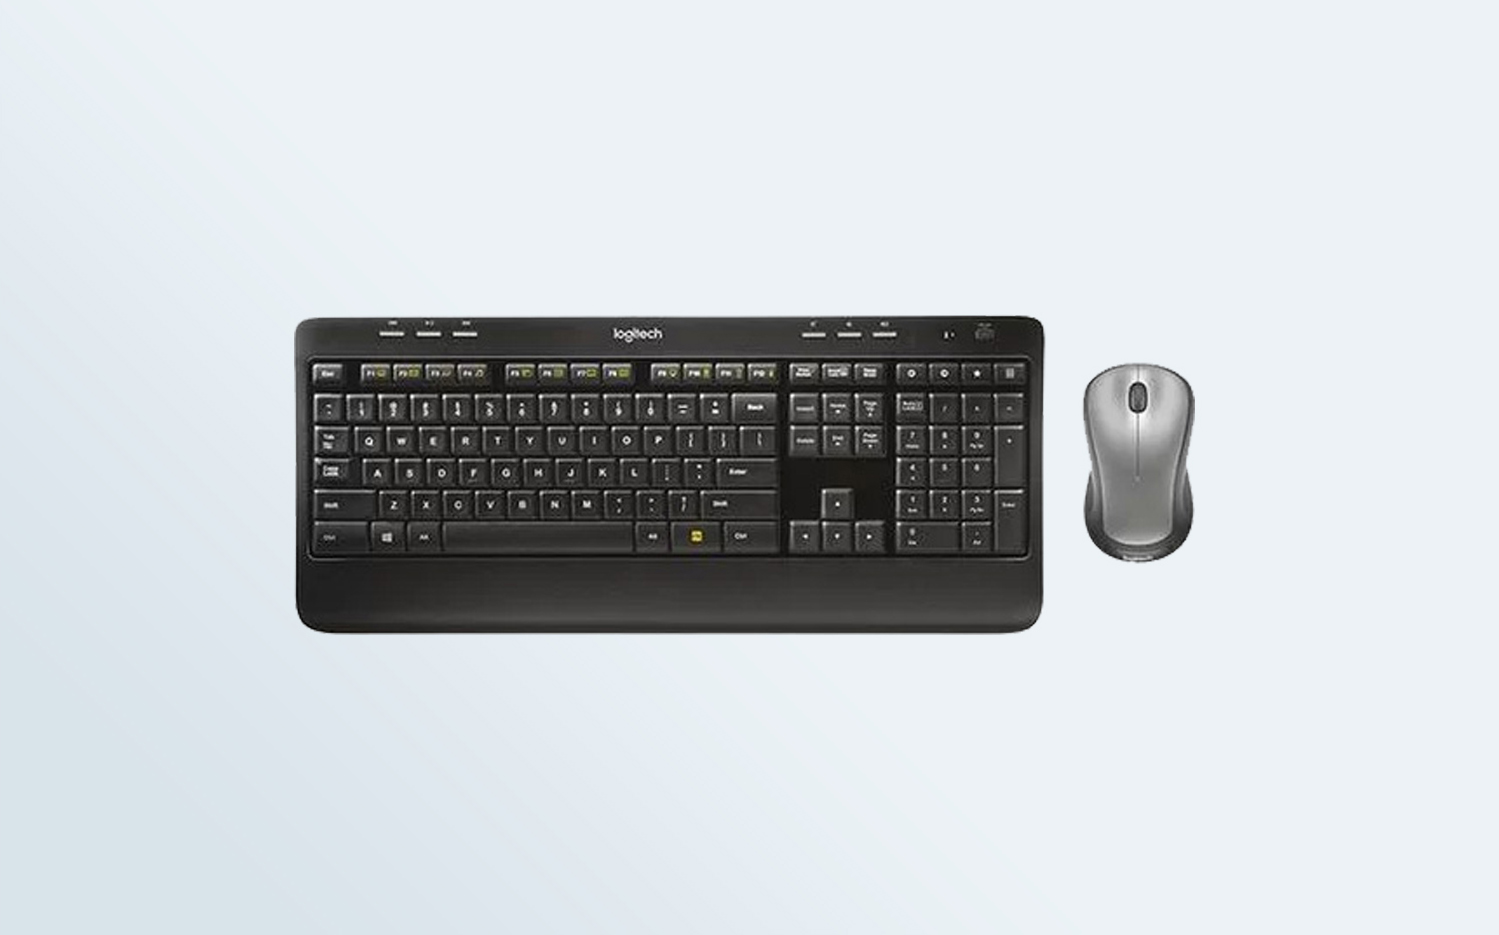 Best Wireless Keyboard and Mouse 2019 - Bluetooth Combo